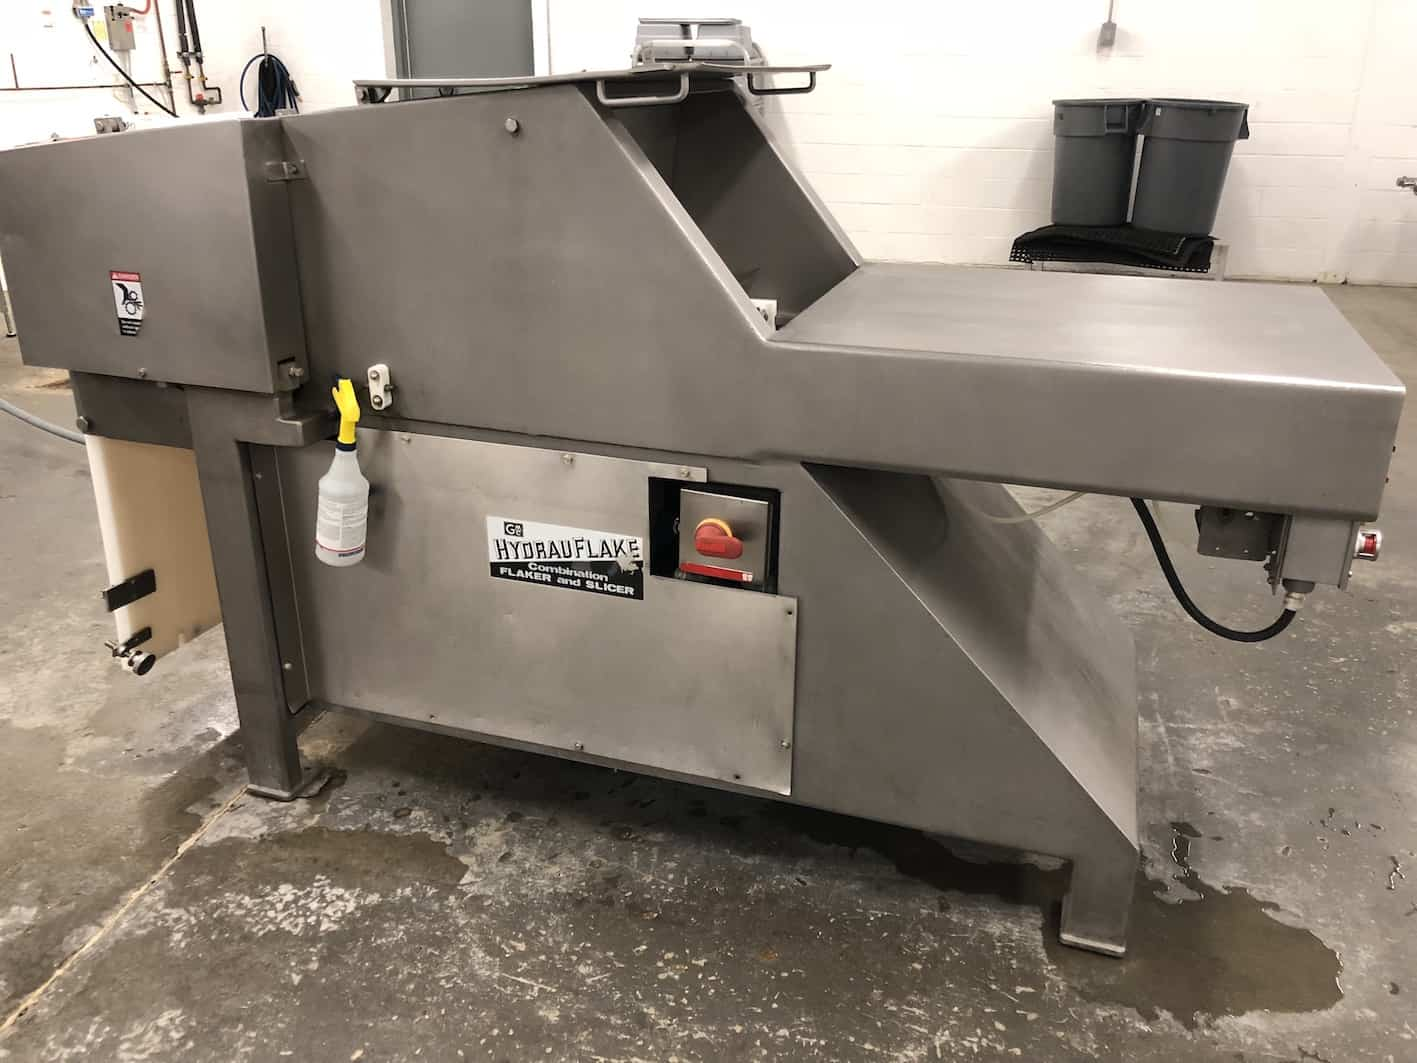 "Hydrauflake Combination Meat Block Flaker & Slicer, Model 2501, 10-Cycle Slice Blades Mounted on 12-1/2"" S/S Flow Through Drum Operating @ 540 RPM, Feeds Blocks Automatically with Adjustable Pneumatic Ram (80 PSI Pressure), Ram Can Be Started & Stopped as Desired for Controlled Batching W/O Turning Power Off, Block Capacity of 10"" x 24""x 24"" (25.4 cm X 60.96 cm X 60.96 cm), Powered by 10 HP, 230/460 V, 60 Hz, 3 Phase Enclosed Motor with Controls (Estimated Weight 2,500 LBS) (Shown Cycling) (DISMANTLED FOR CLEANING. UNIT COMPLETE AND IN OPERATING CONDITION)"